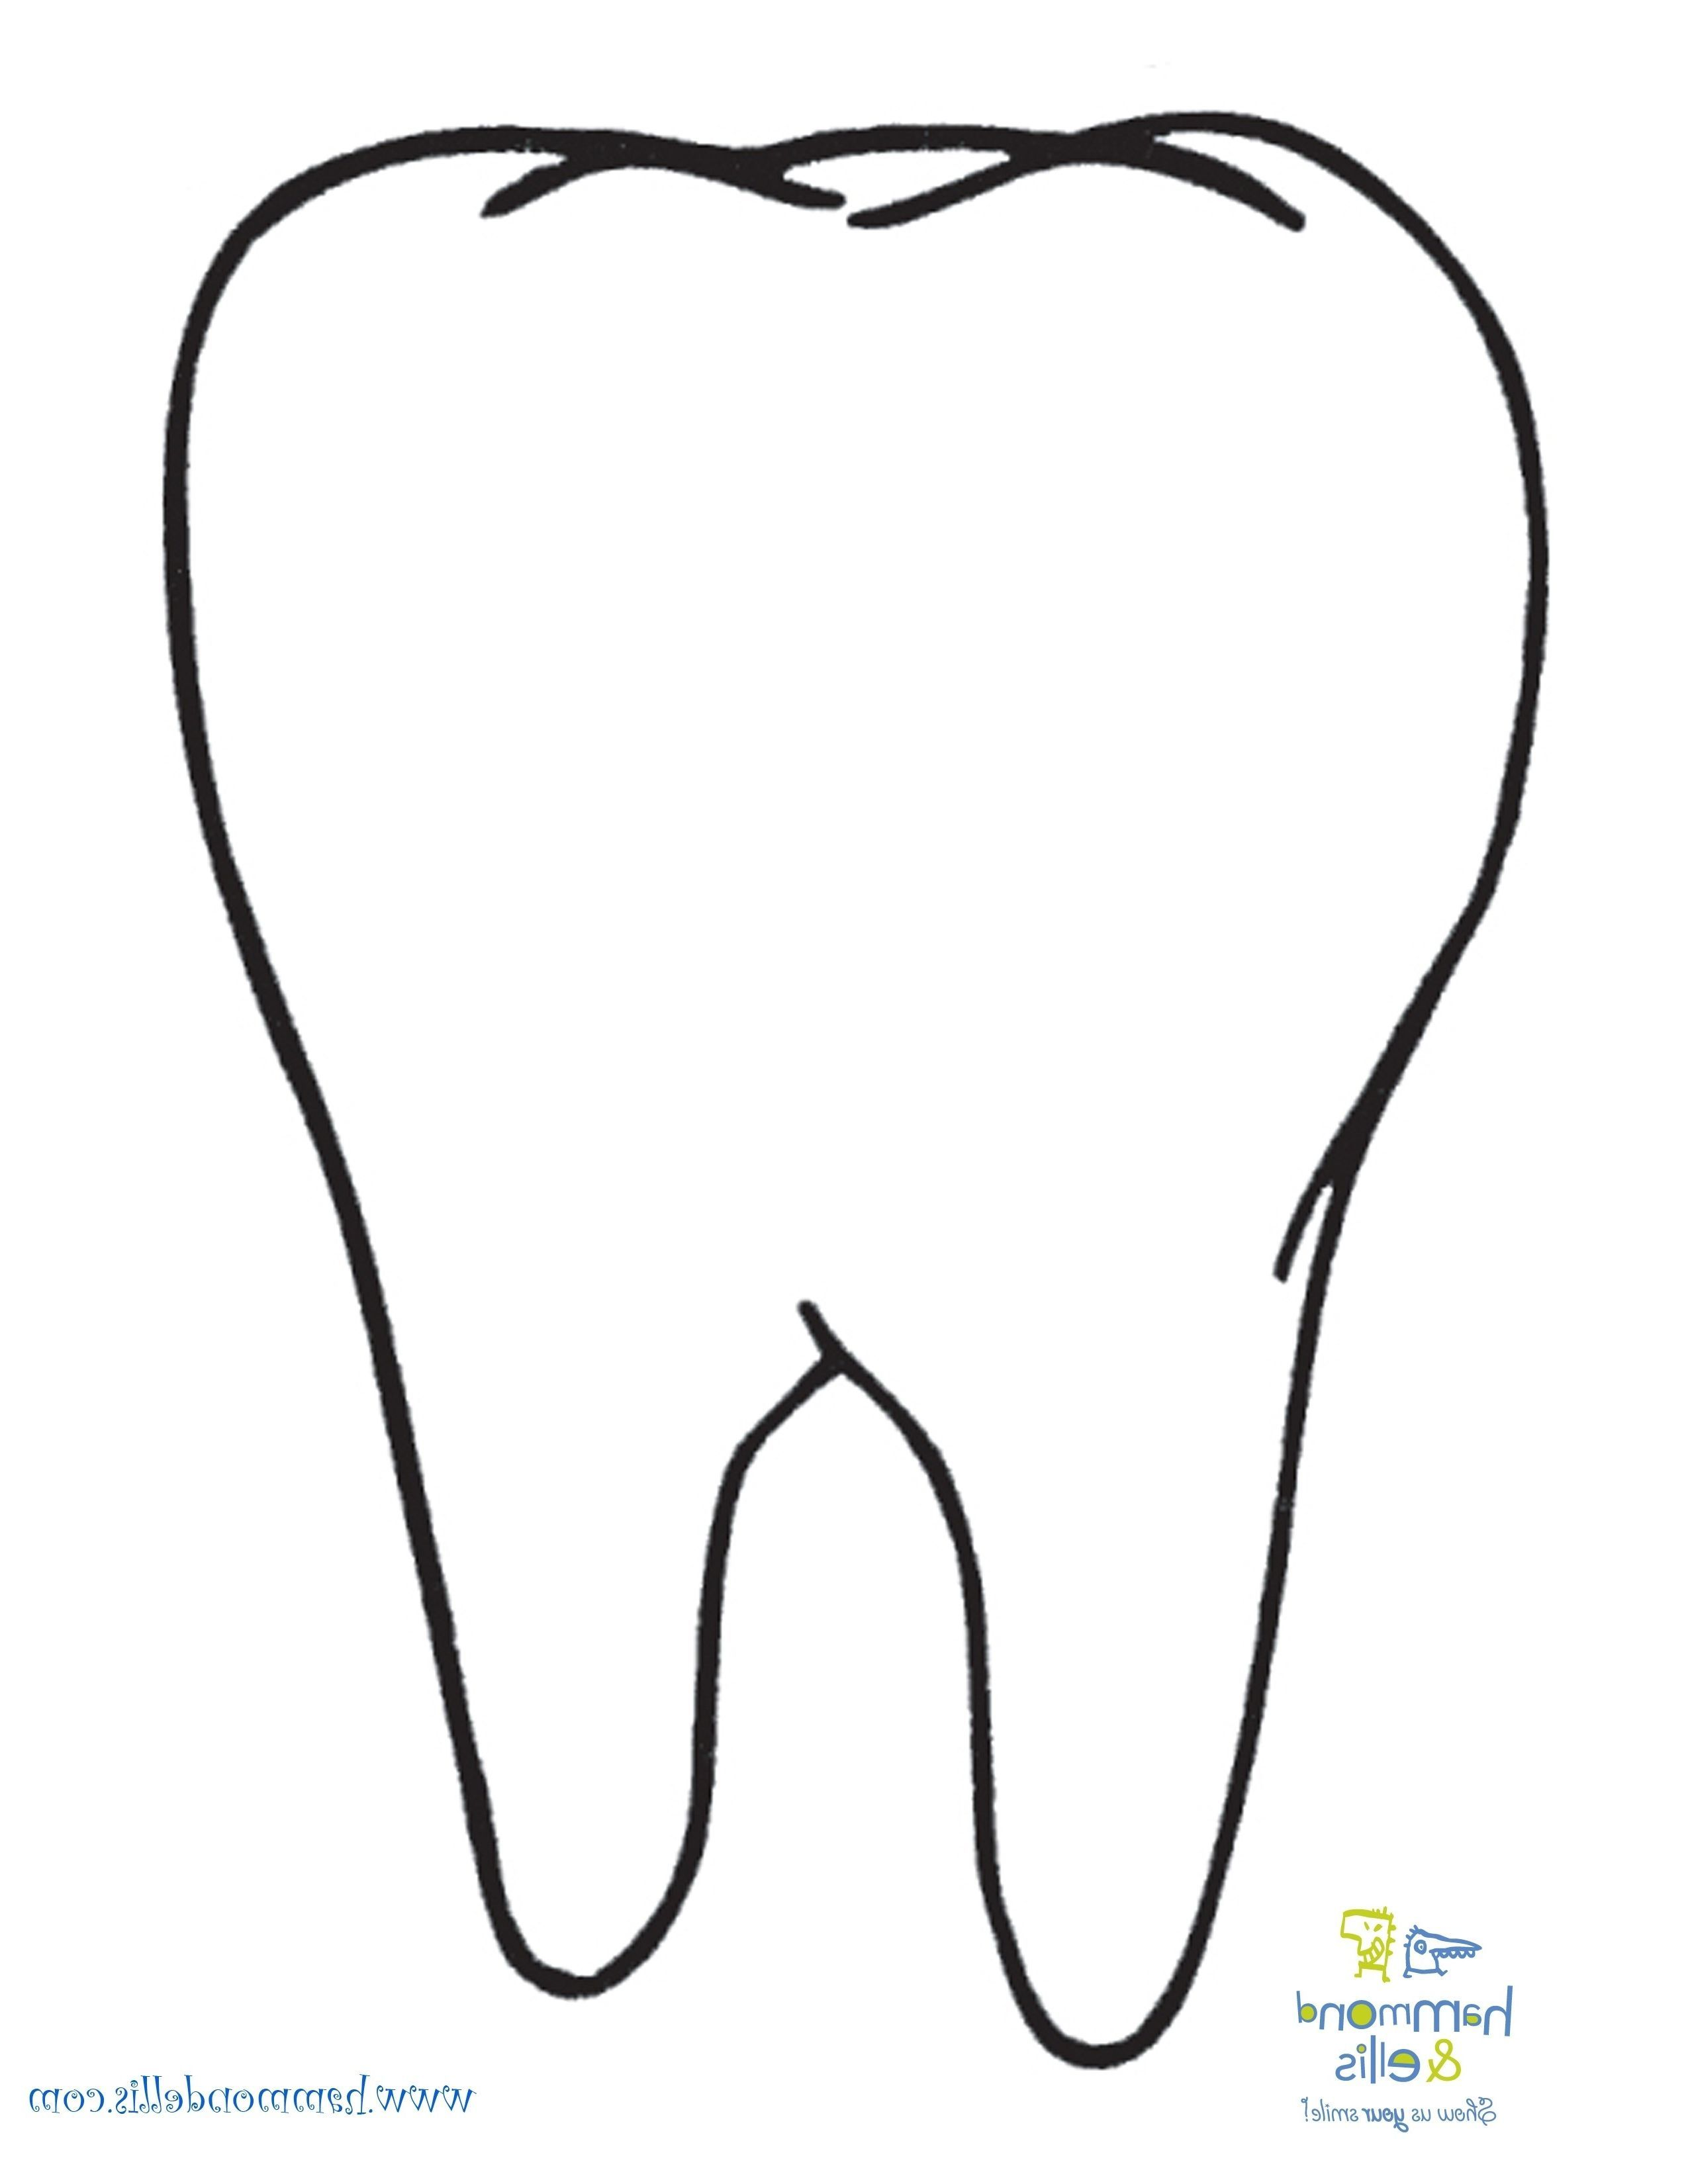 Tooth Coloring Pages Ccbadcfaaefed The Act Of Adding Color Coloring Pages Fairy Coloring Pages Teeth